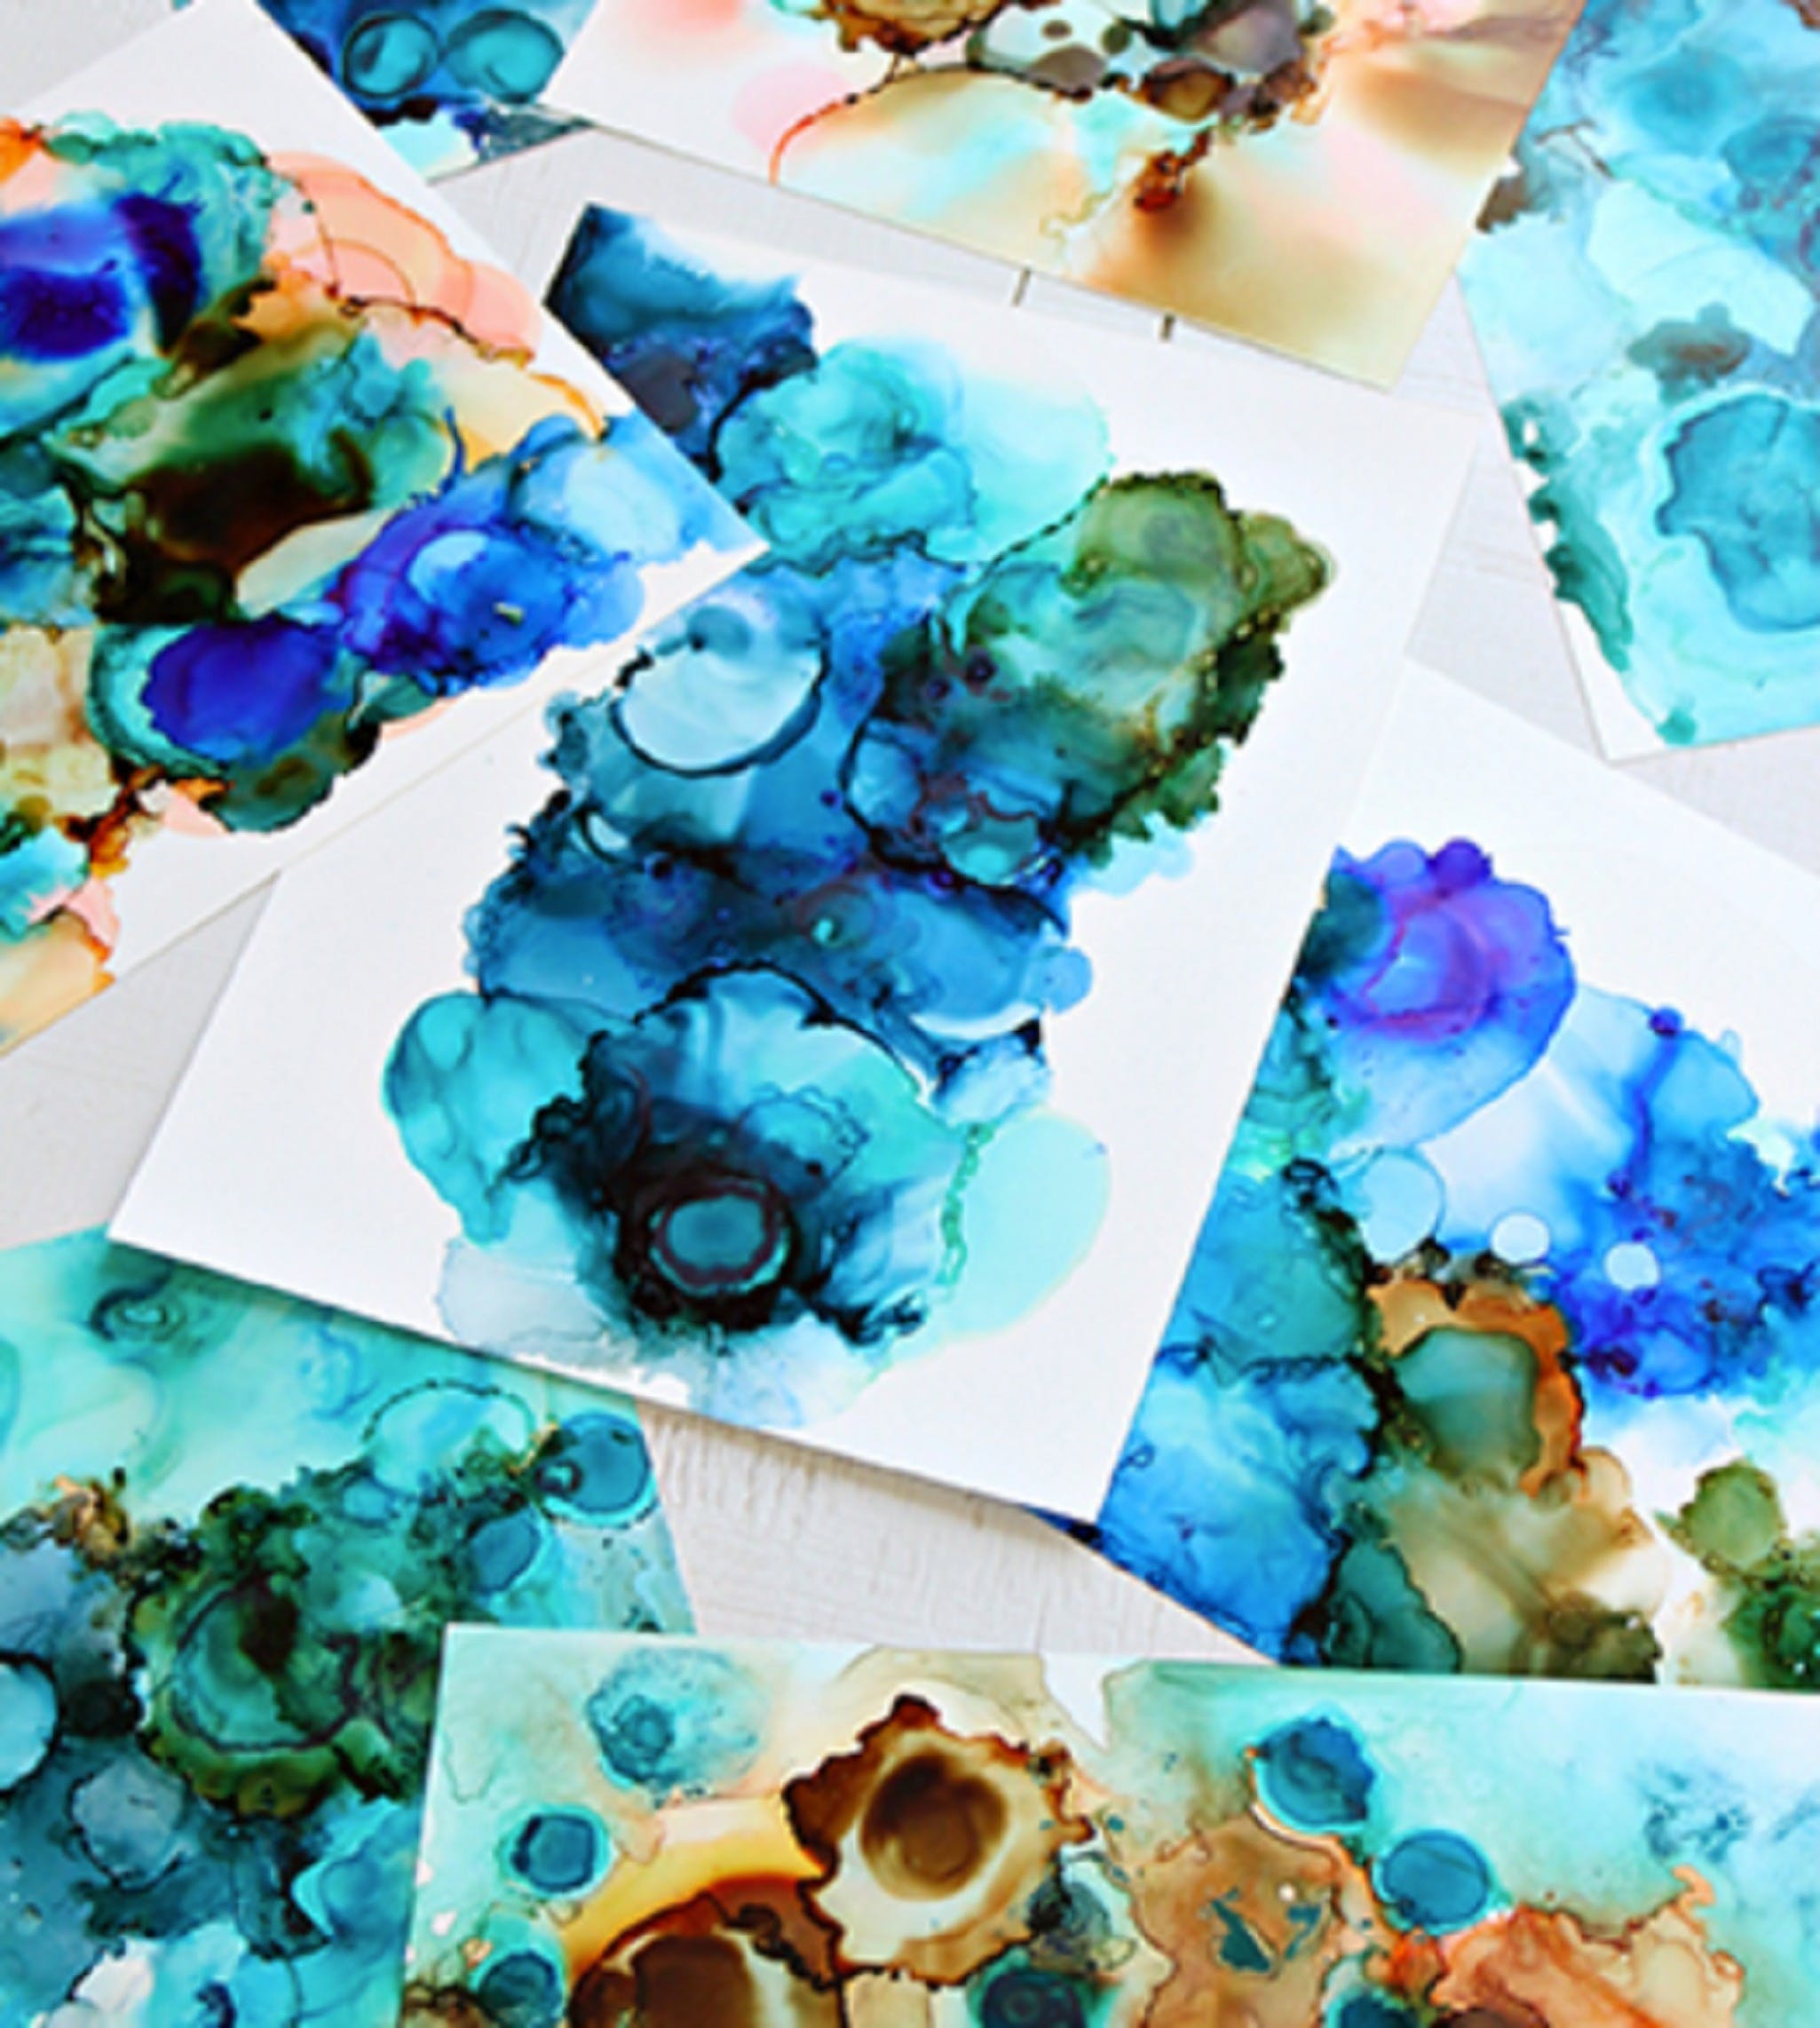 Alcohol Ink Art Class - Accommodation Burleigh